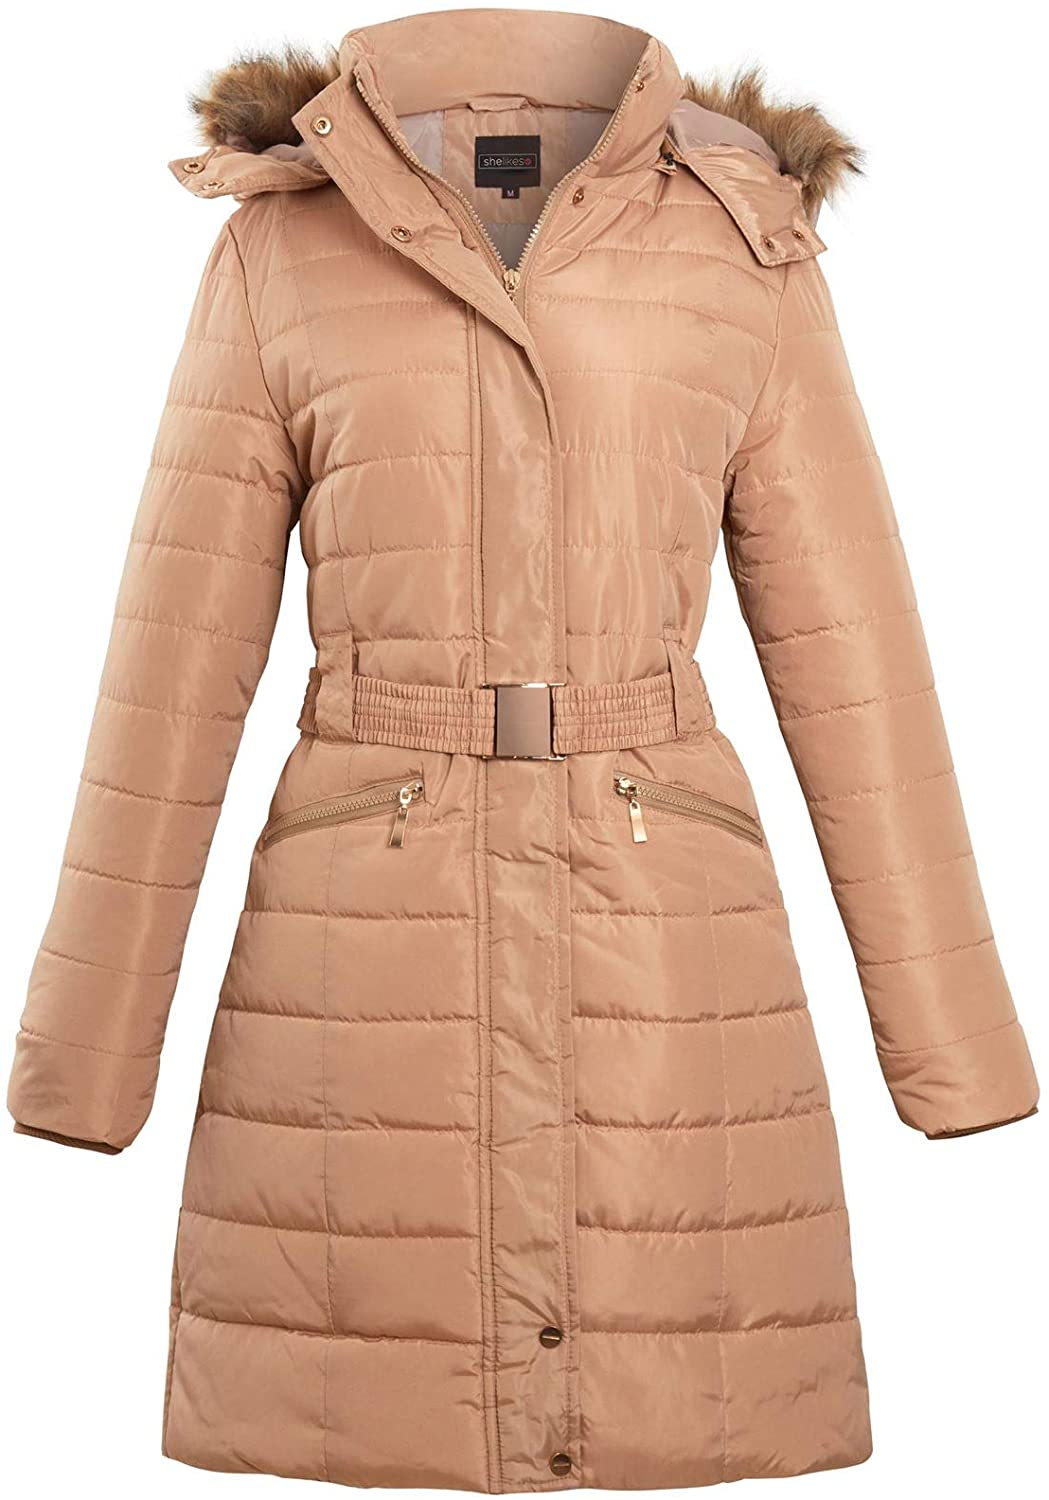 shelikes Womens Belted Faux Fur Hood Hooded Long Parka Jacket Quilted Winter Coat